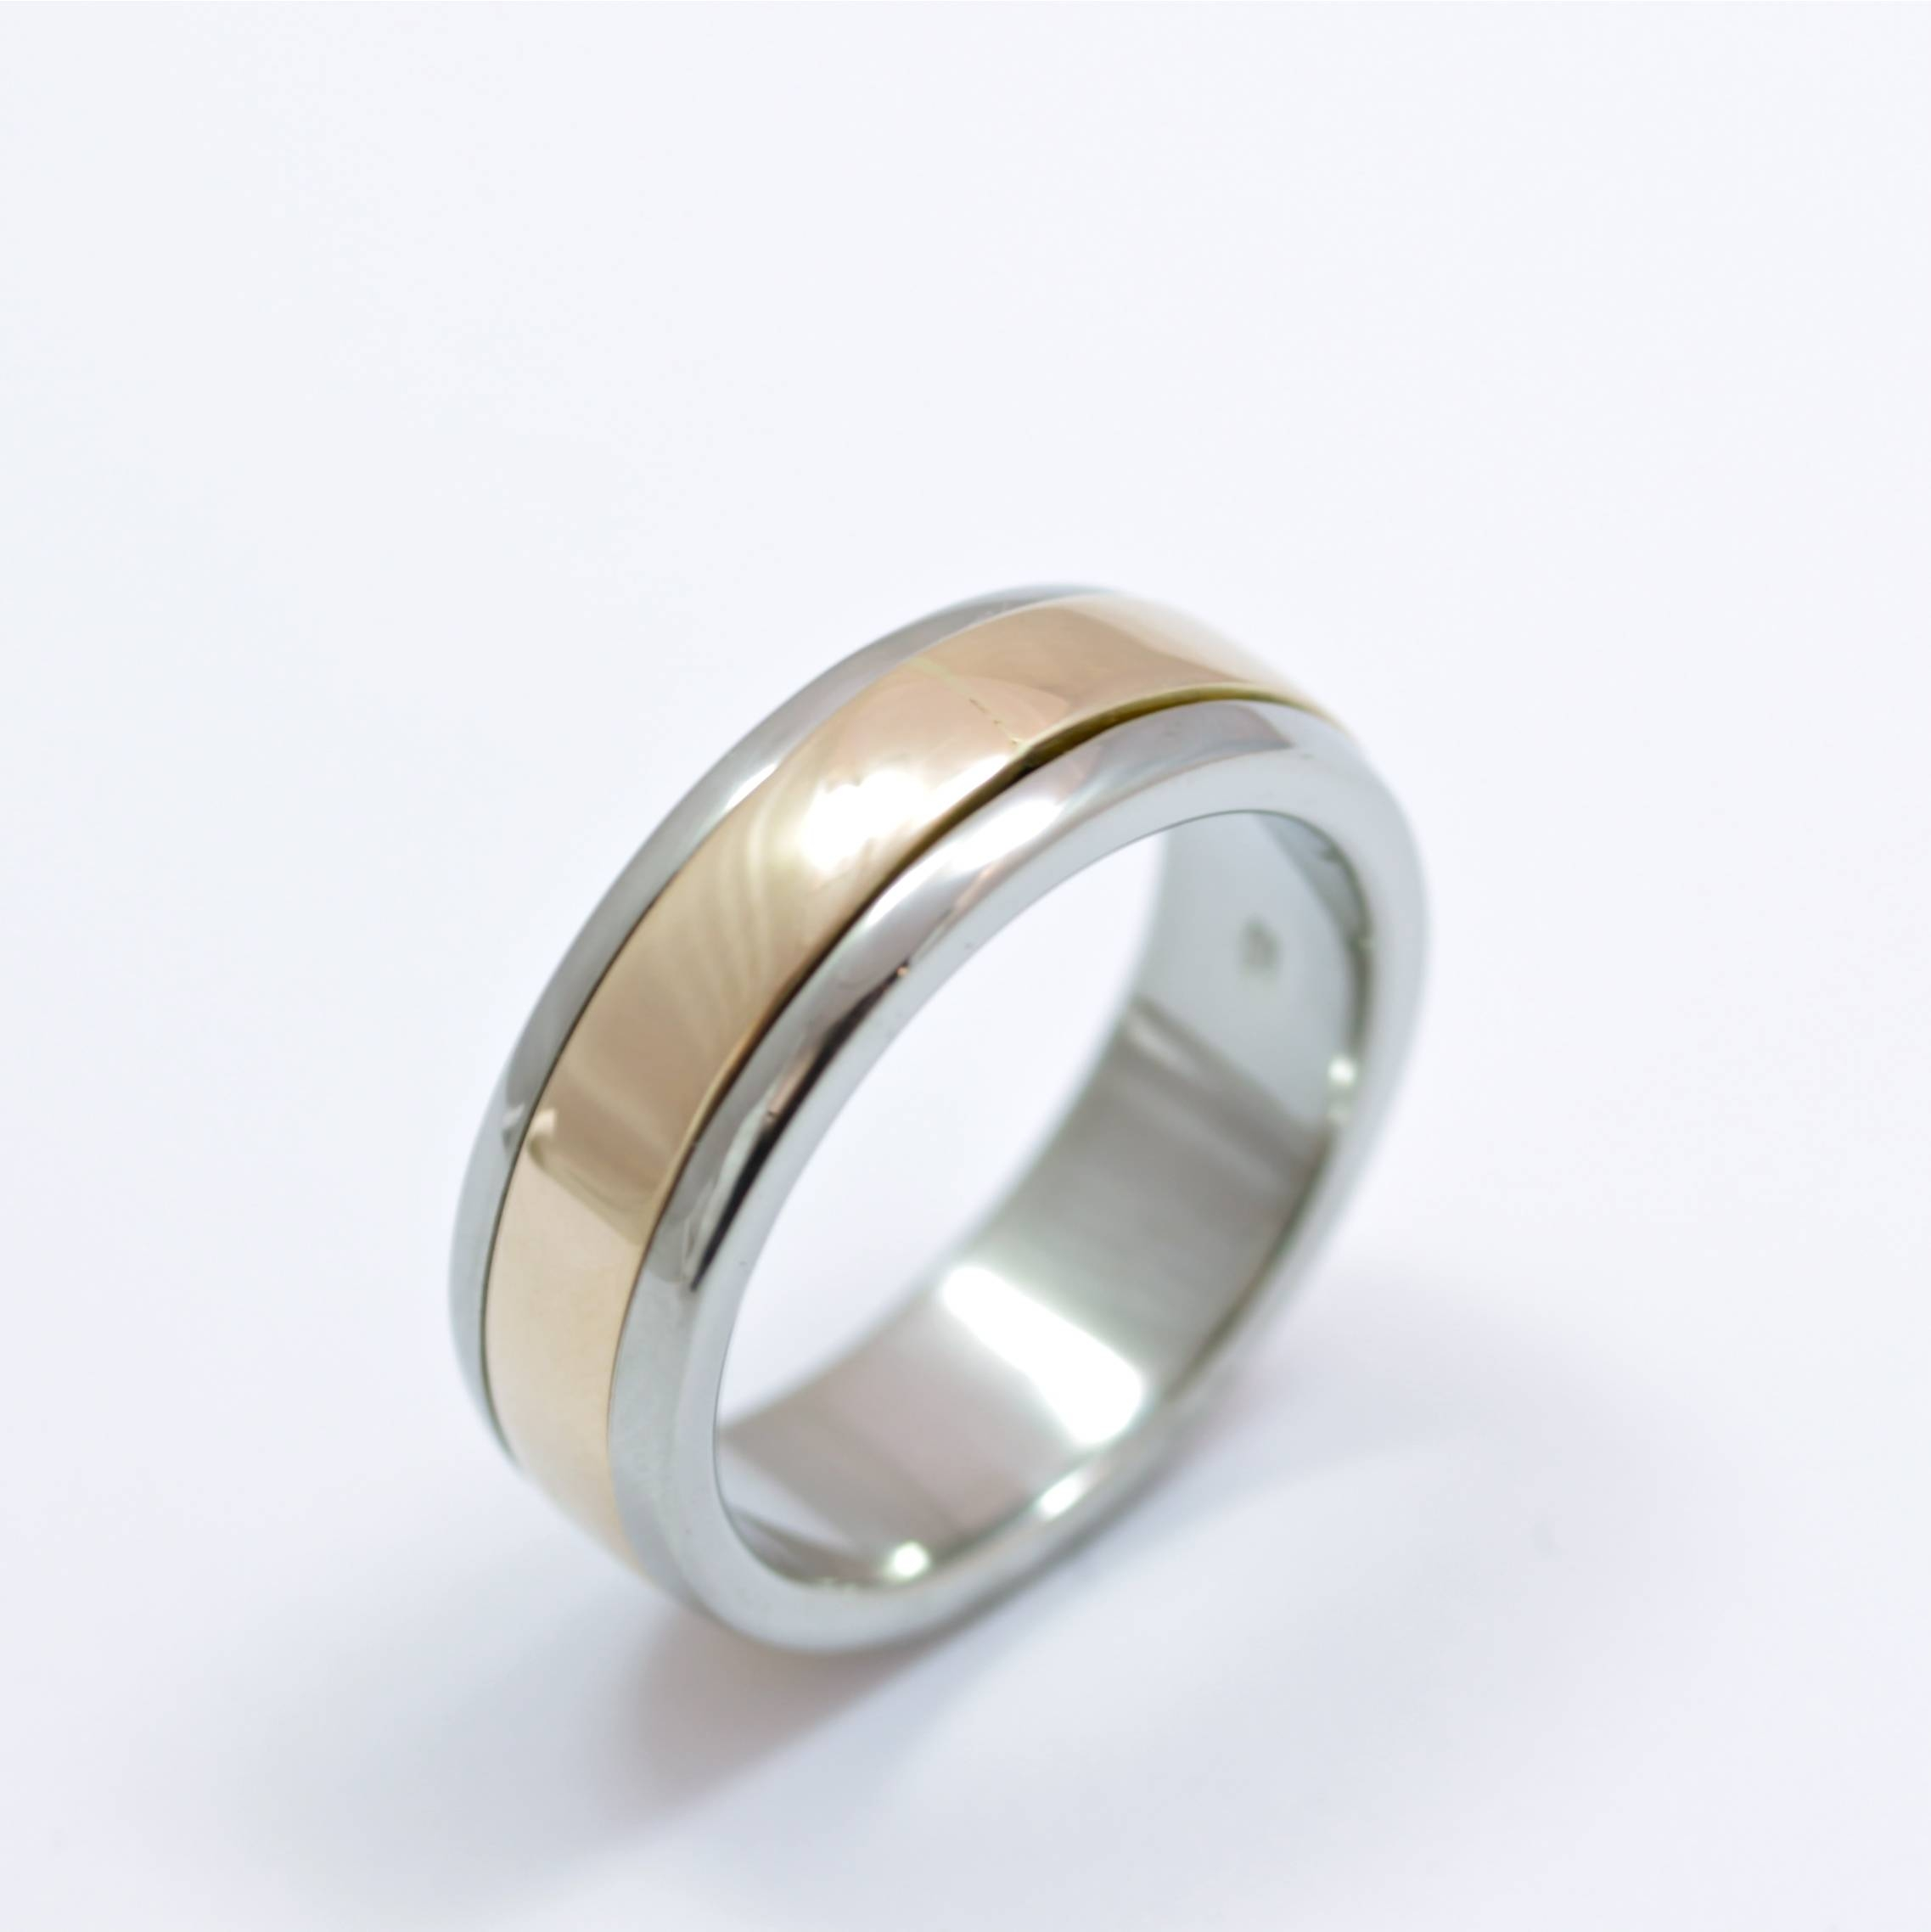 matching brilliant now news on earth zvretouch rings white hers shop groom pair bands wedding his ring